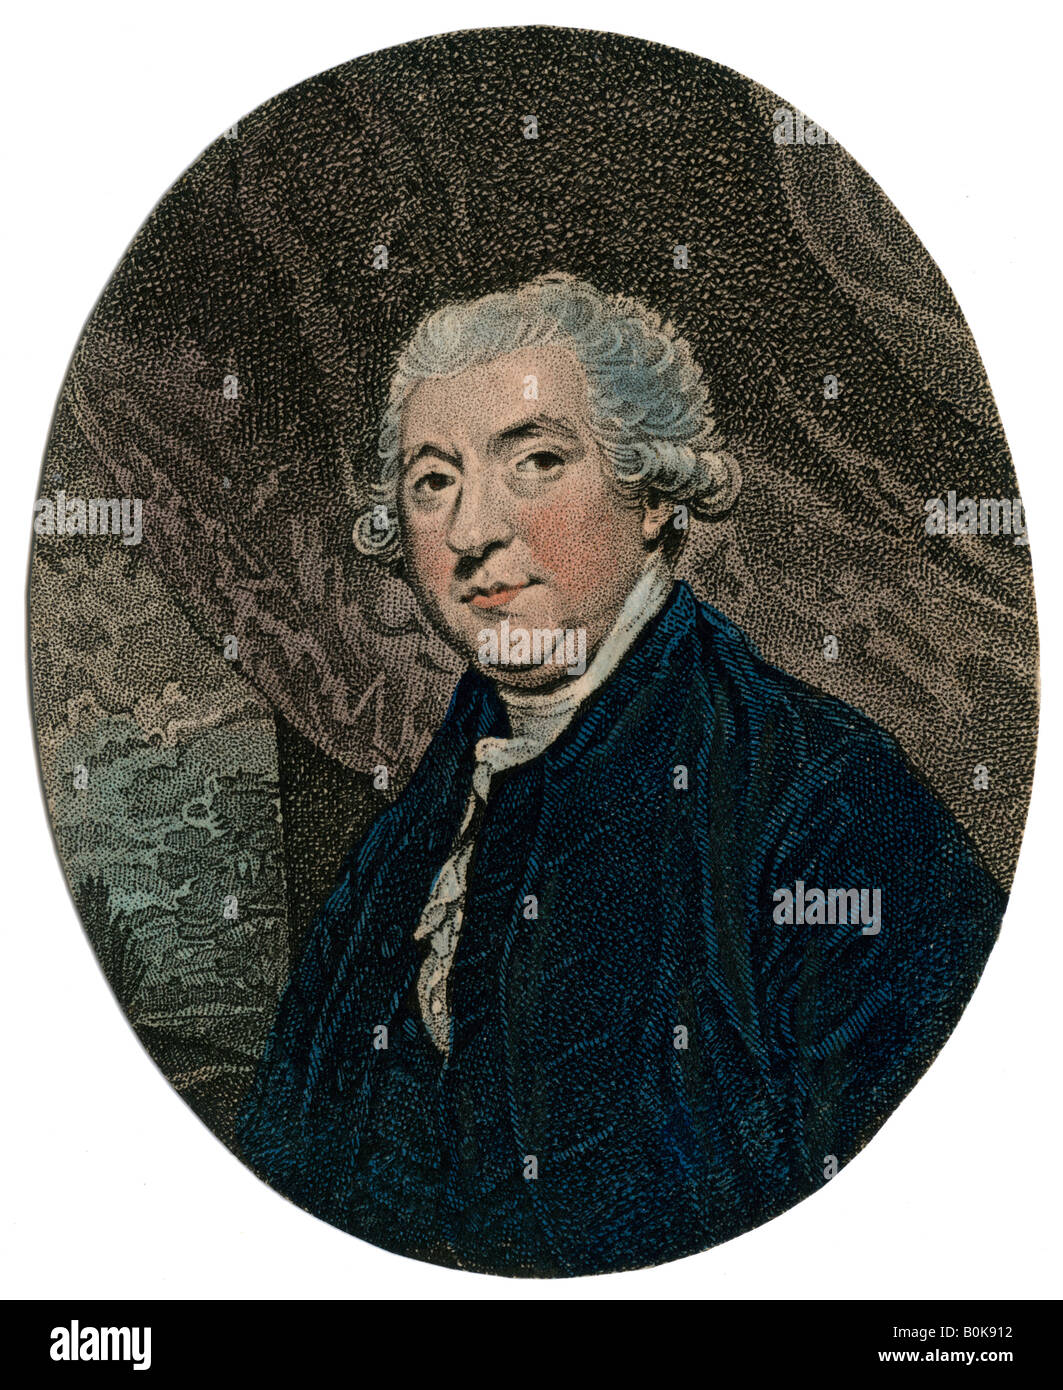 James Boswell, 9th Laird of Auchinleck, 18th century Scottish lawyer and diarist, 19th century. Artist: Unknown - Stock Image